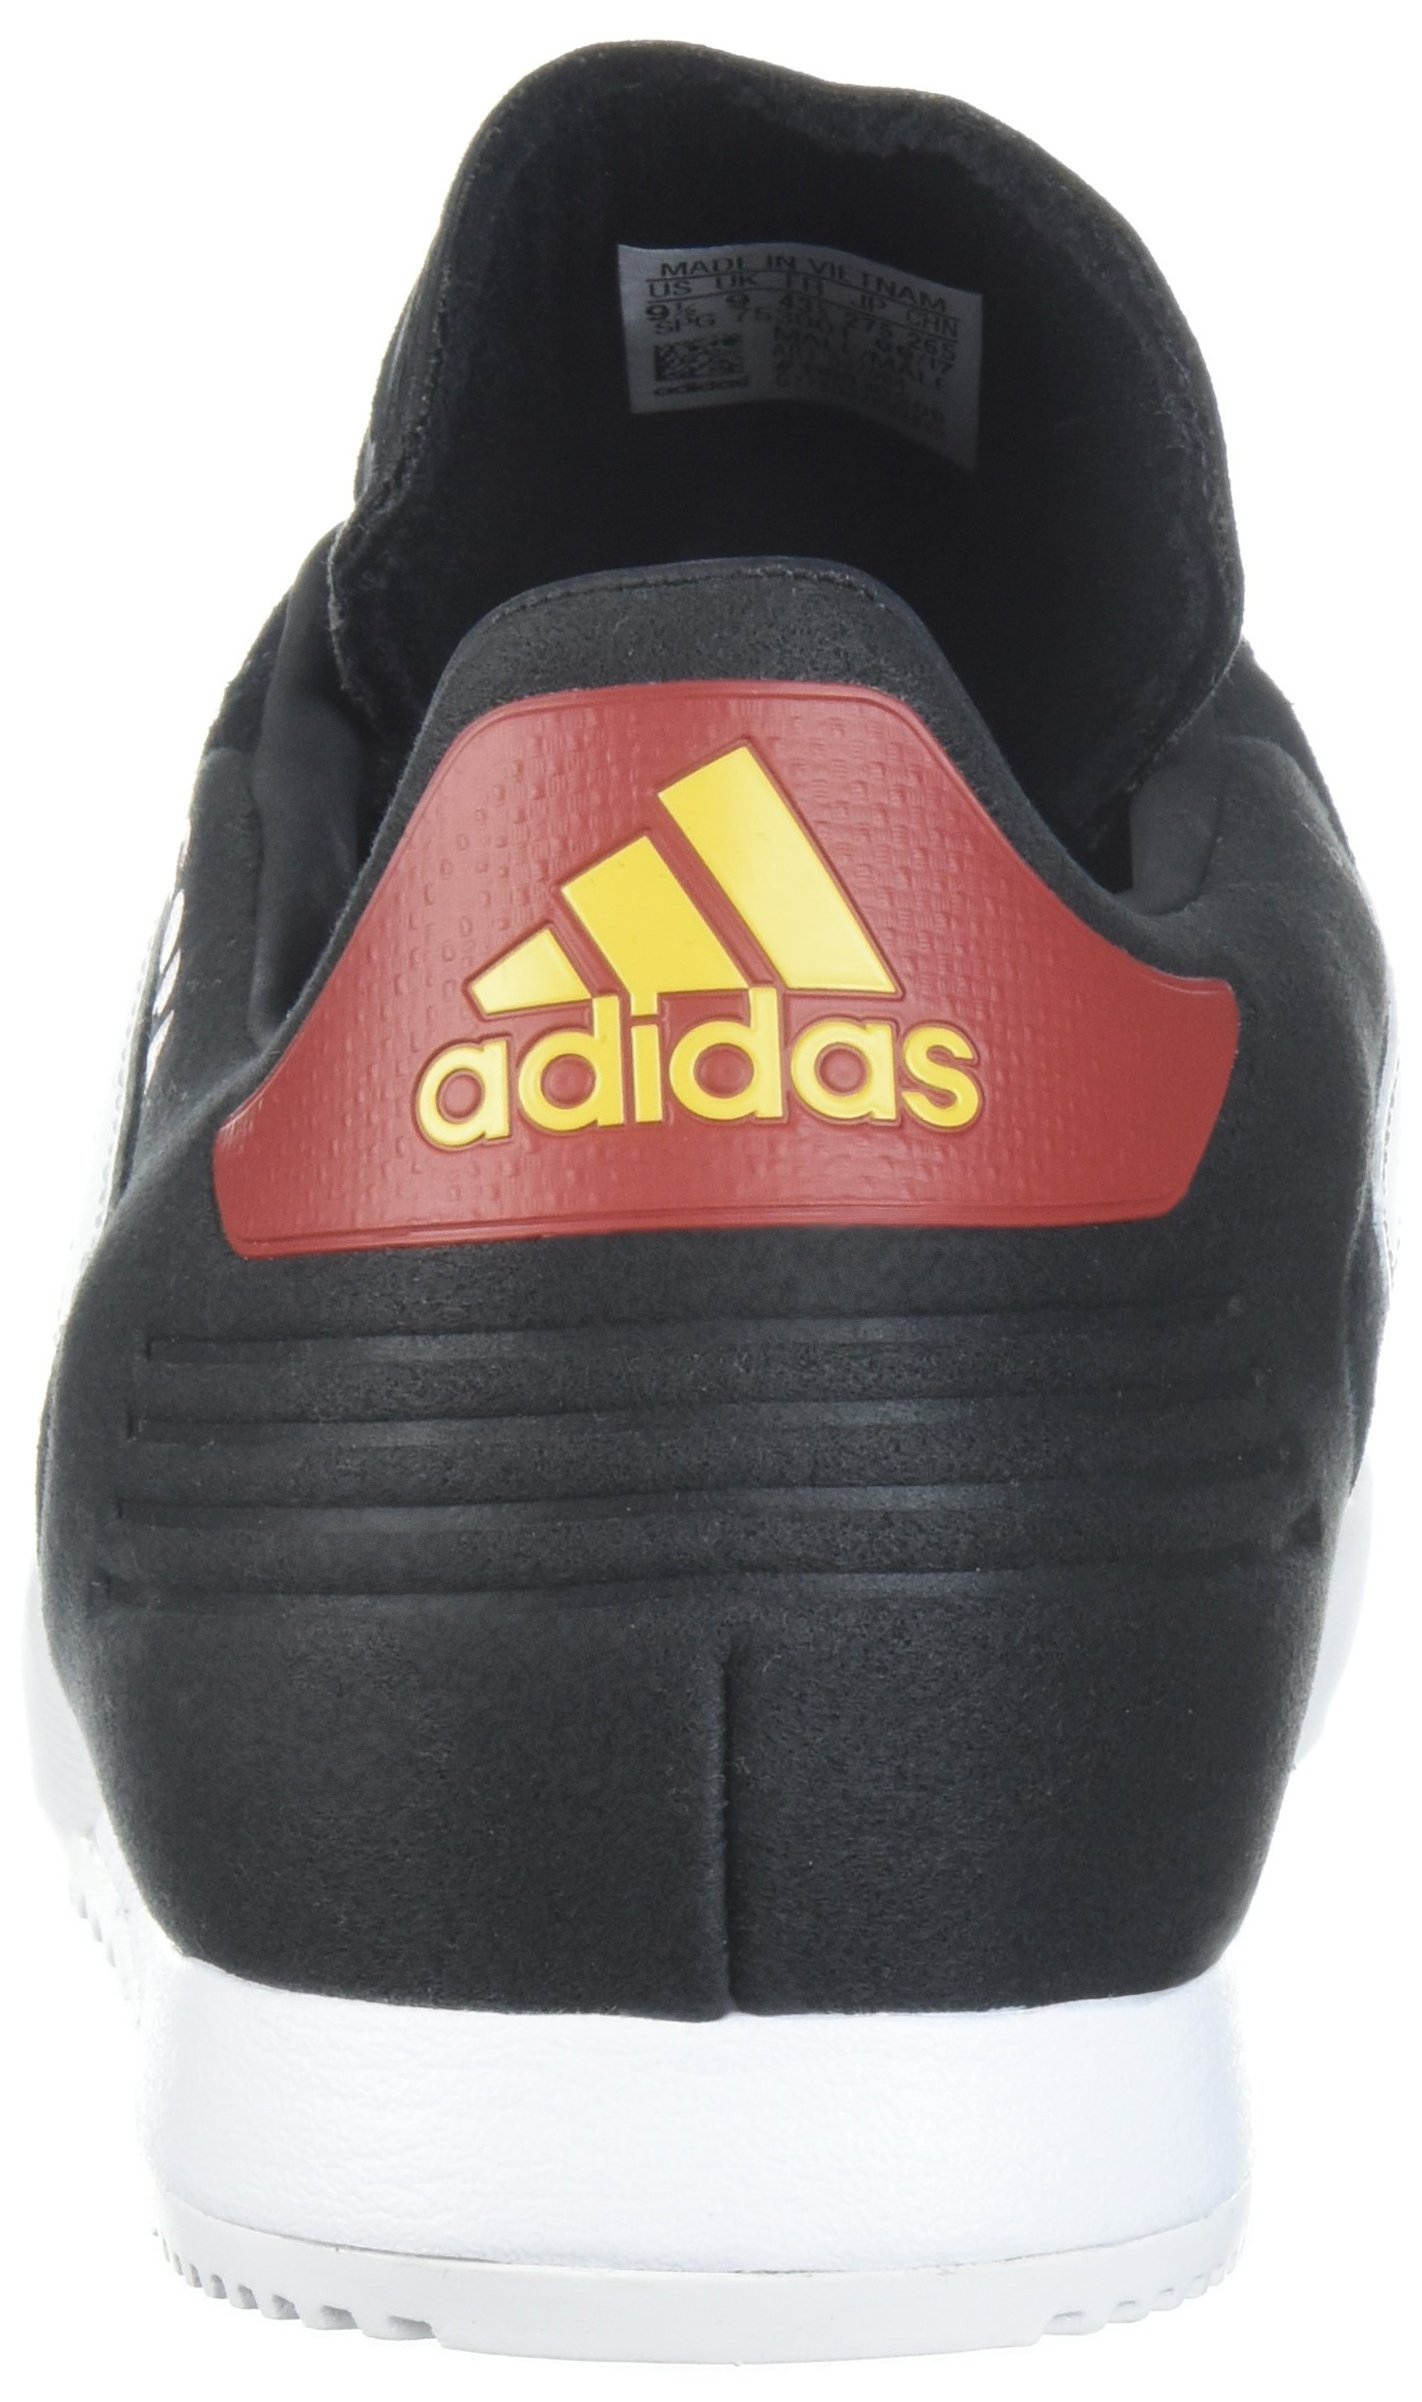 adidas Men's Copa Super Soccer Shoe, Black/White/Power Red, 9 M US by adidas (Image #2)